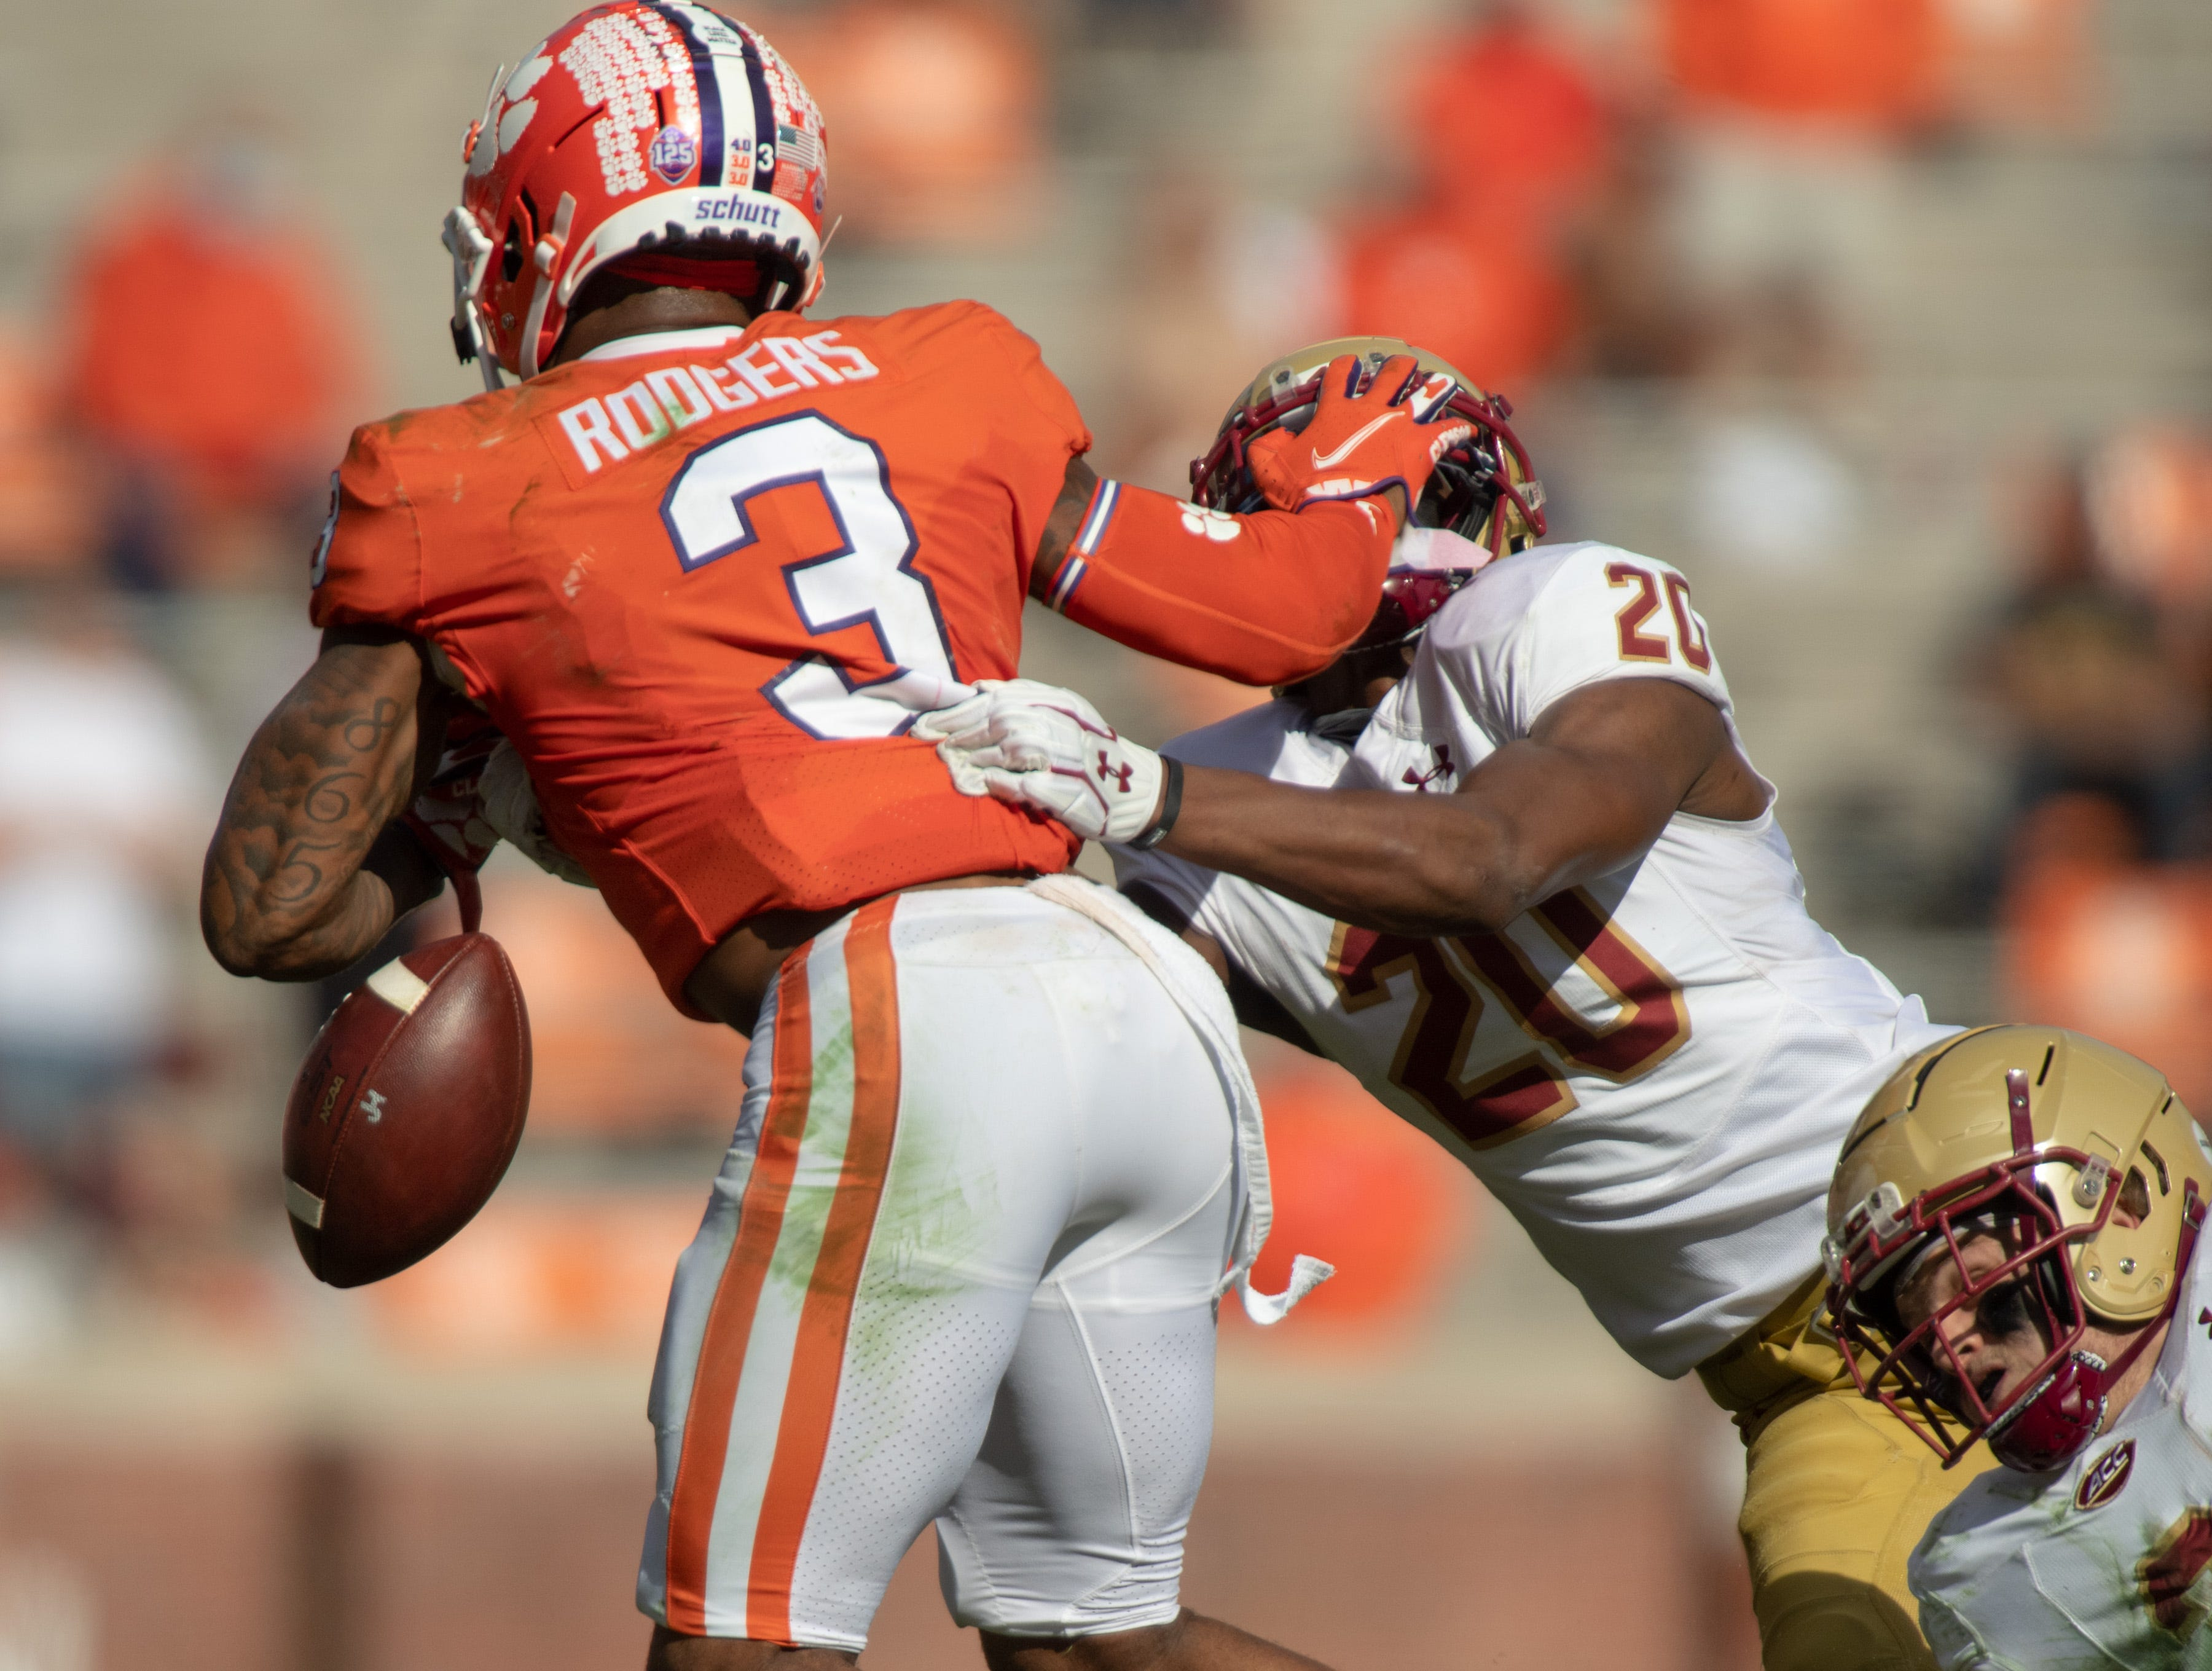 Clemson holds on to the top spot in the latest Amway Coaches Poll